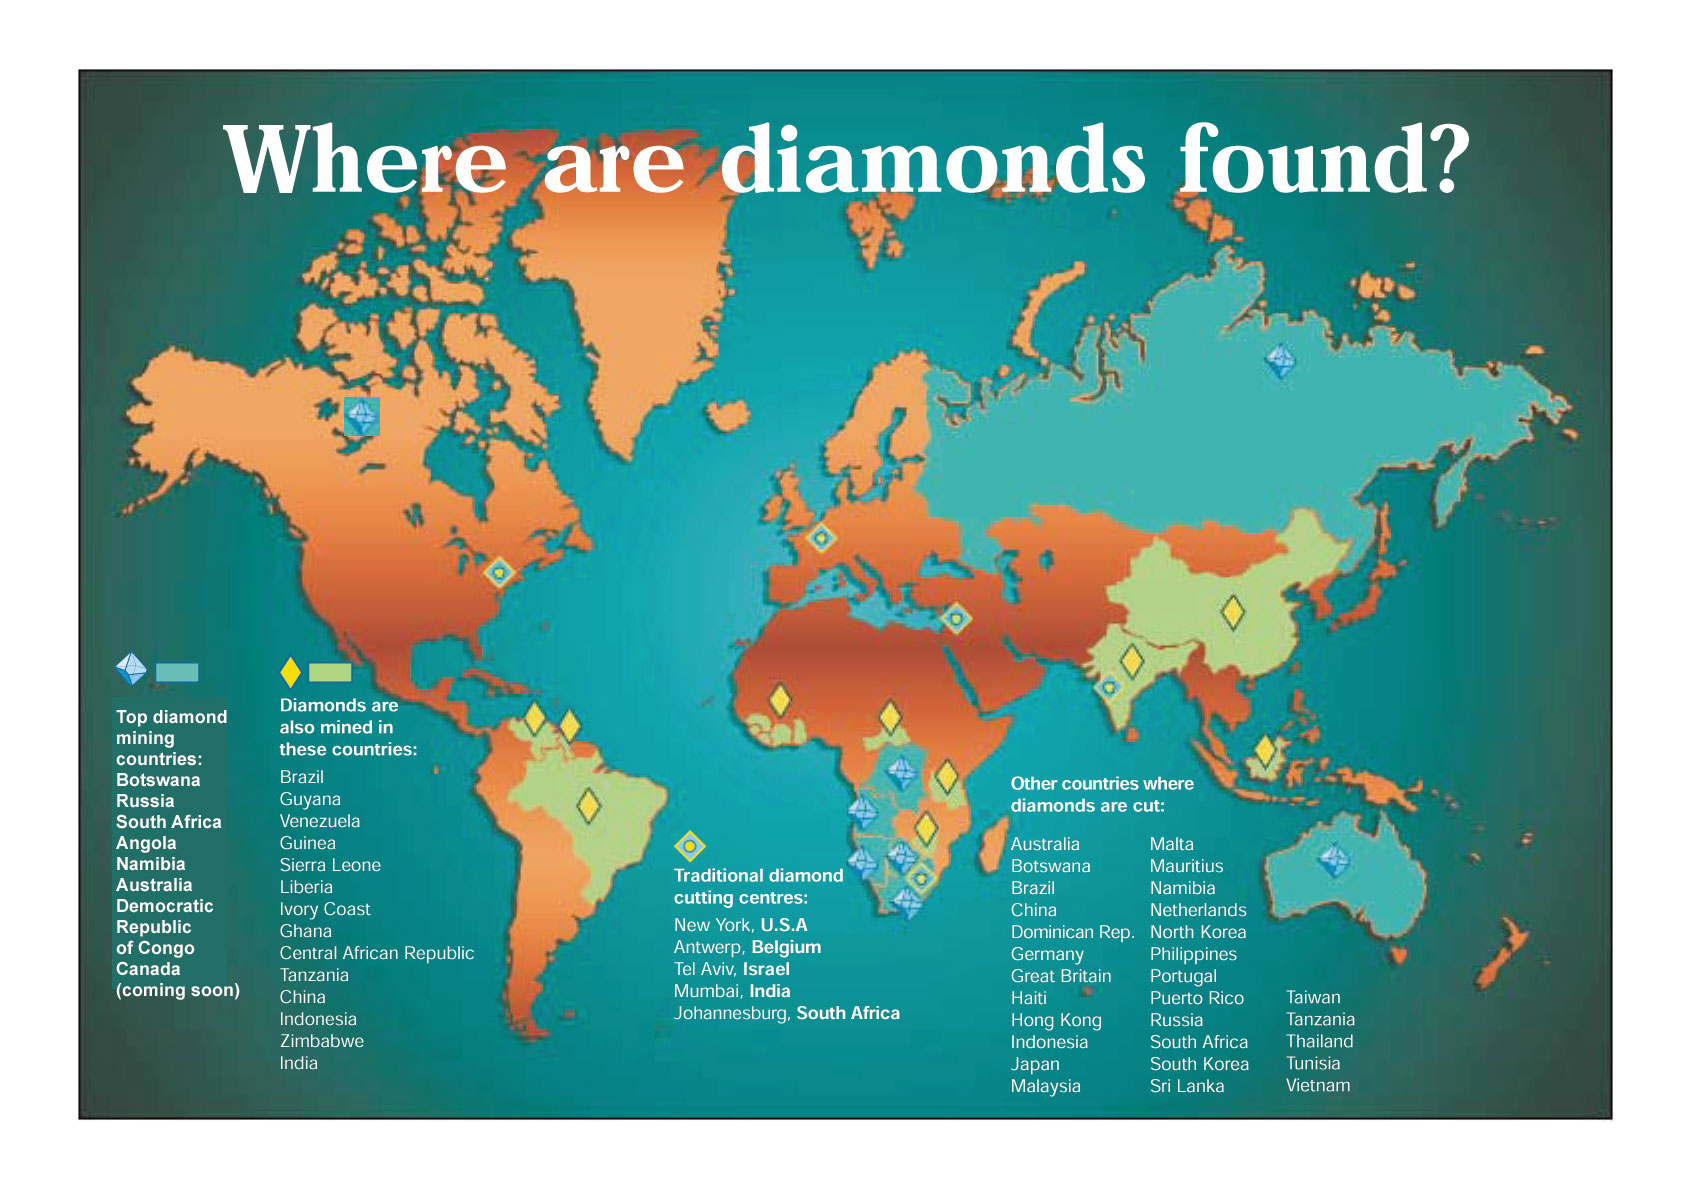 Where Are Diamonds Found?